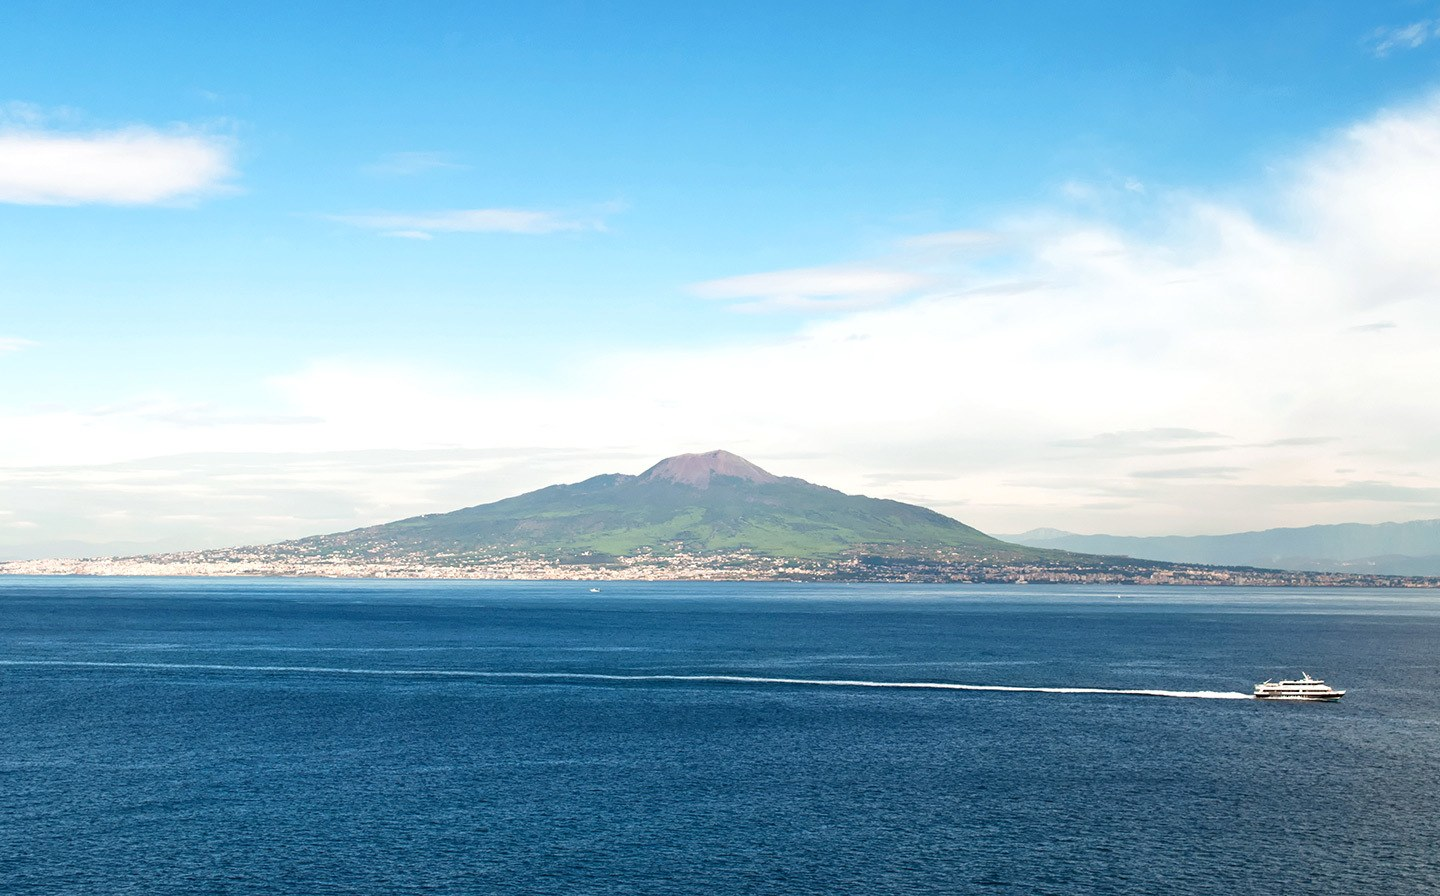 Vesuvius in the Bay of Naples, Italy